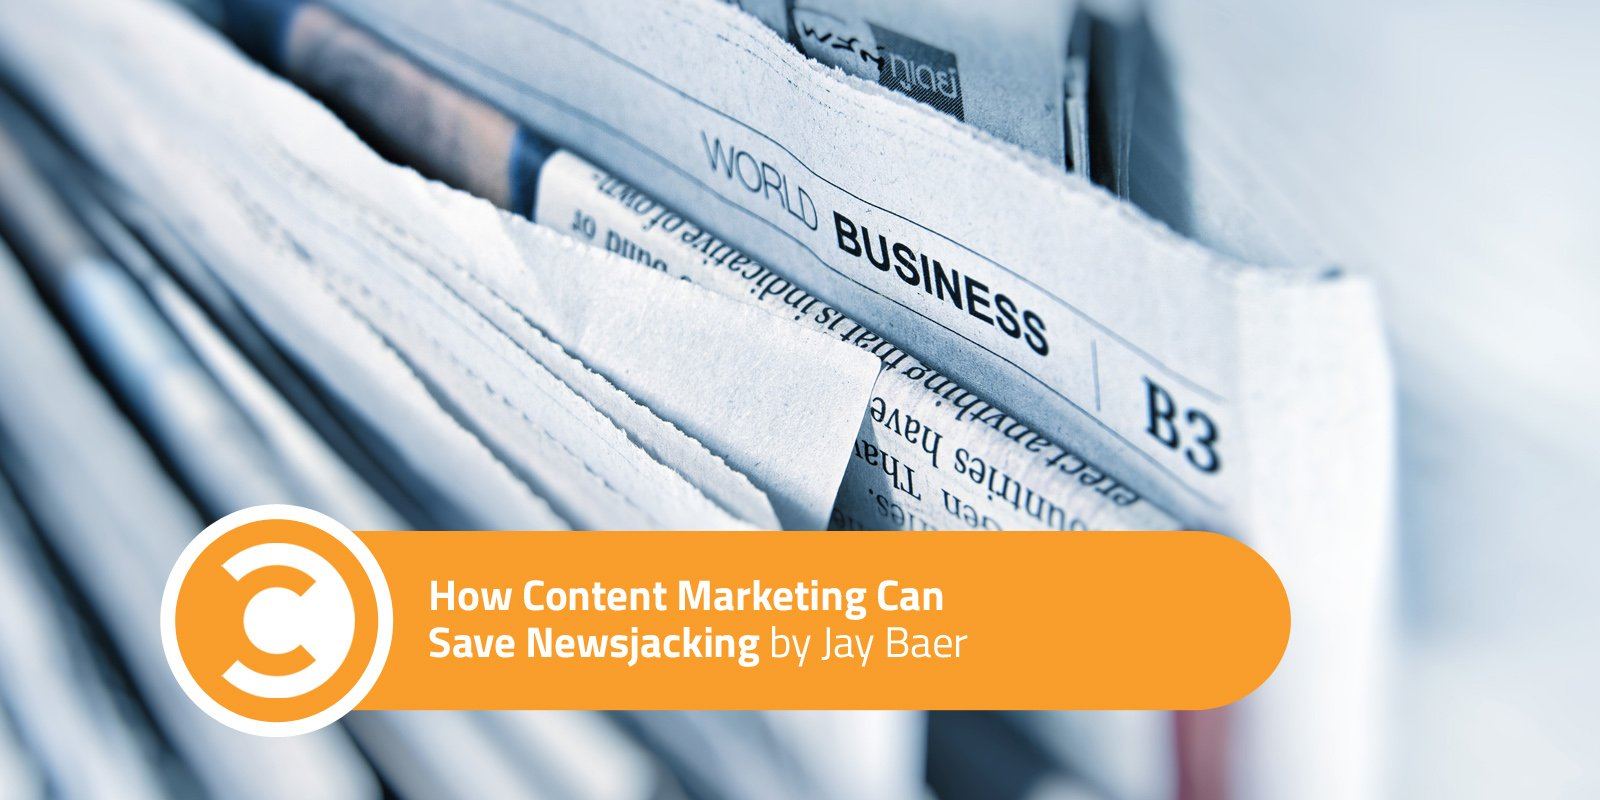 900975637 How Content Marketing Can Save Newsjacking